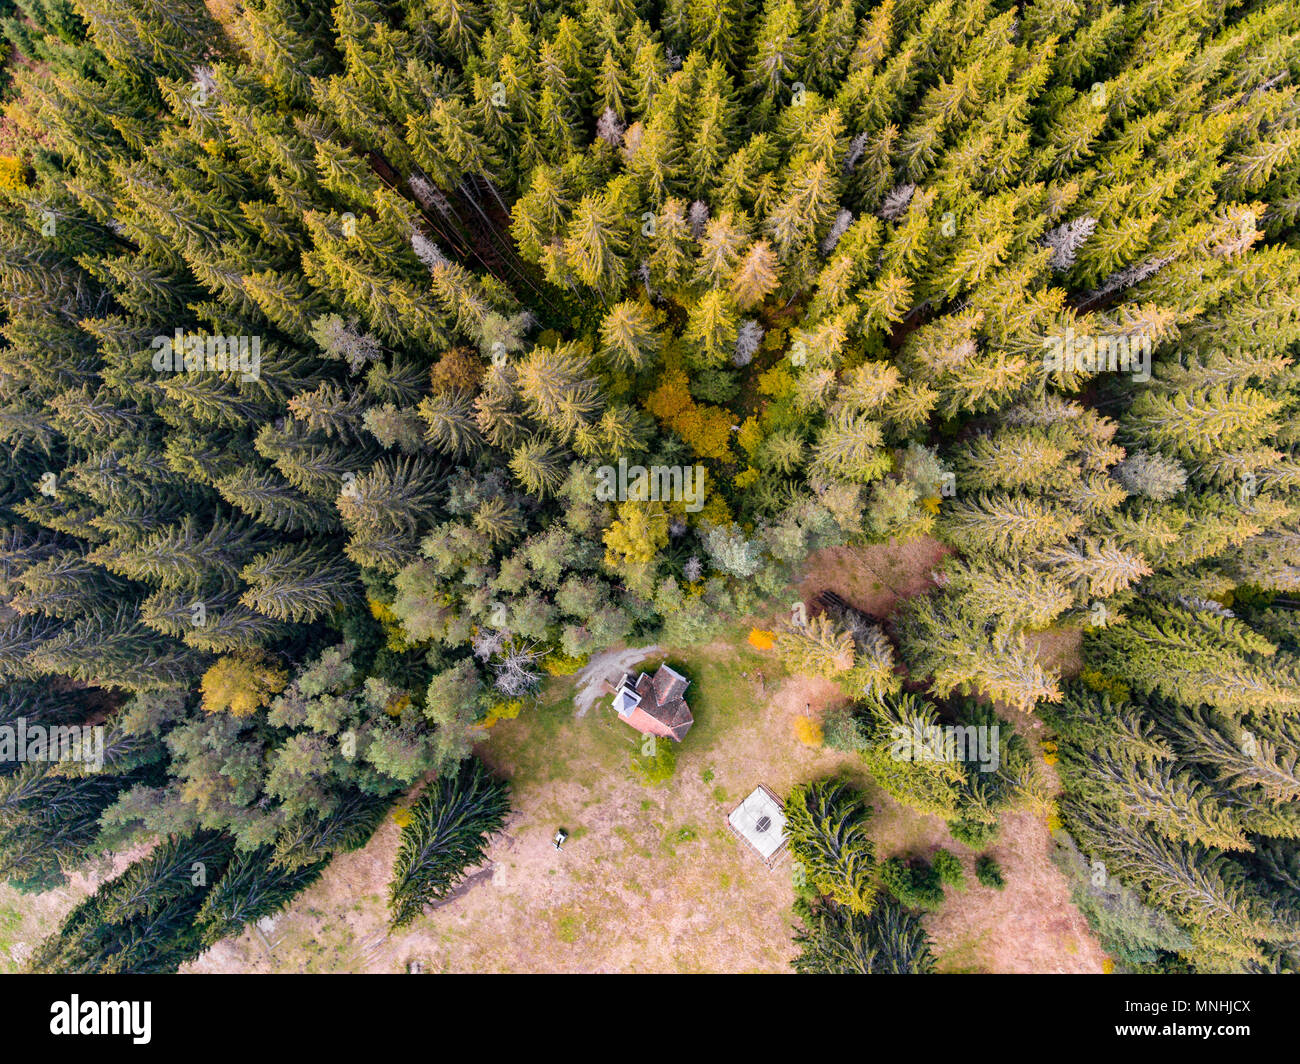 Church in the forest. Aerial View - Stock Image